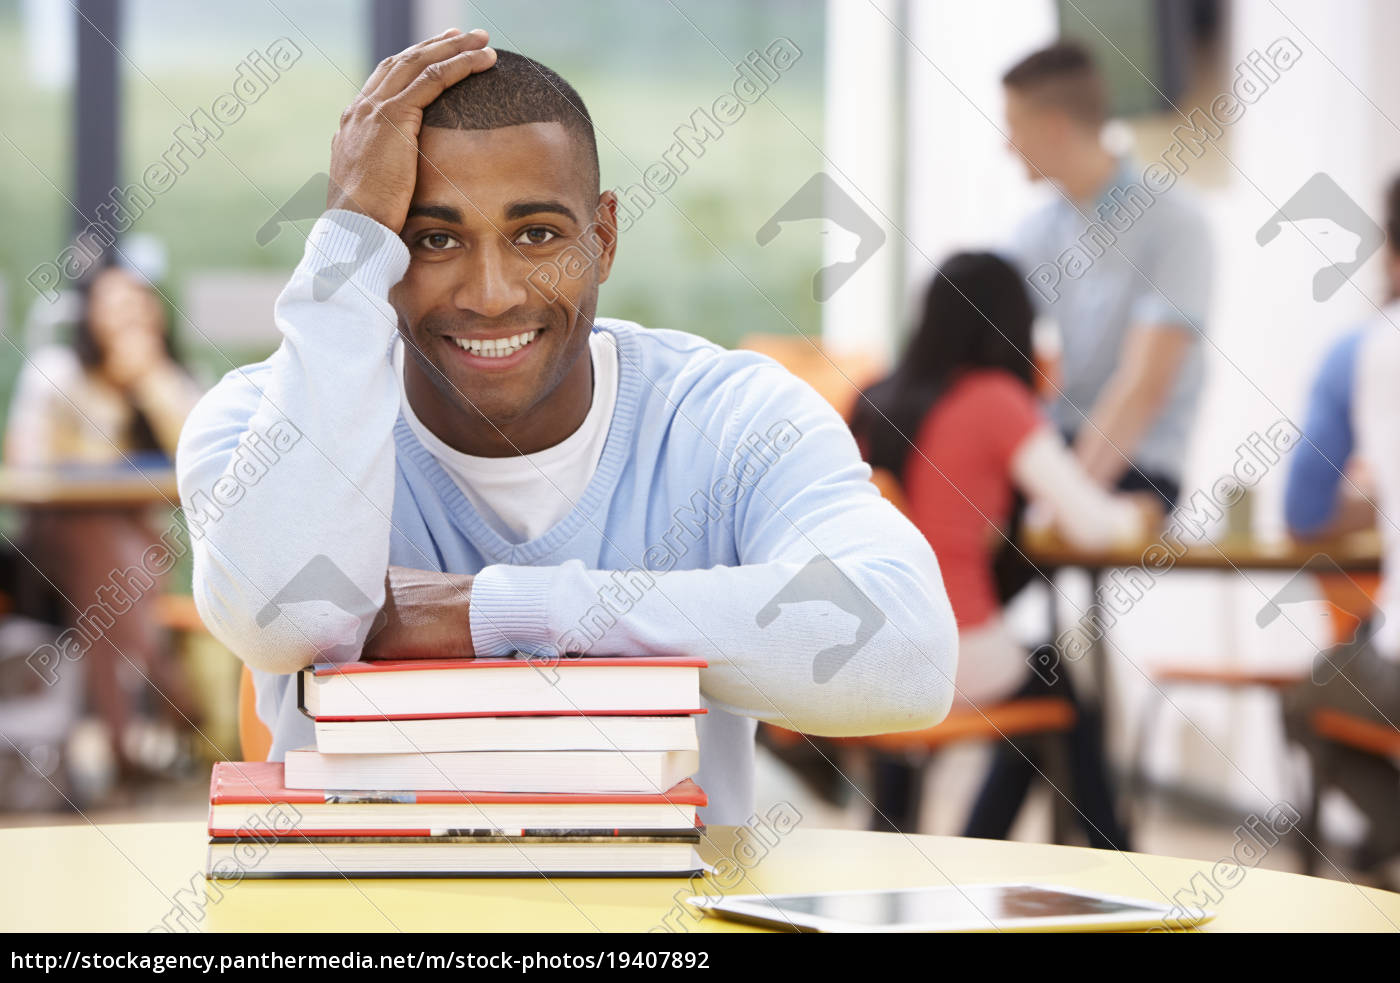 male, student, studying, in, classroom, with - 19407892